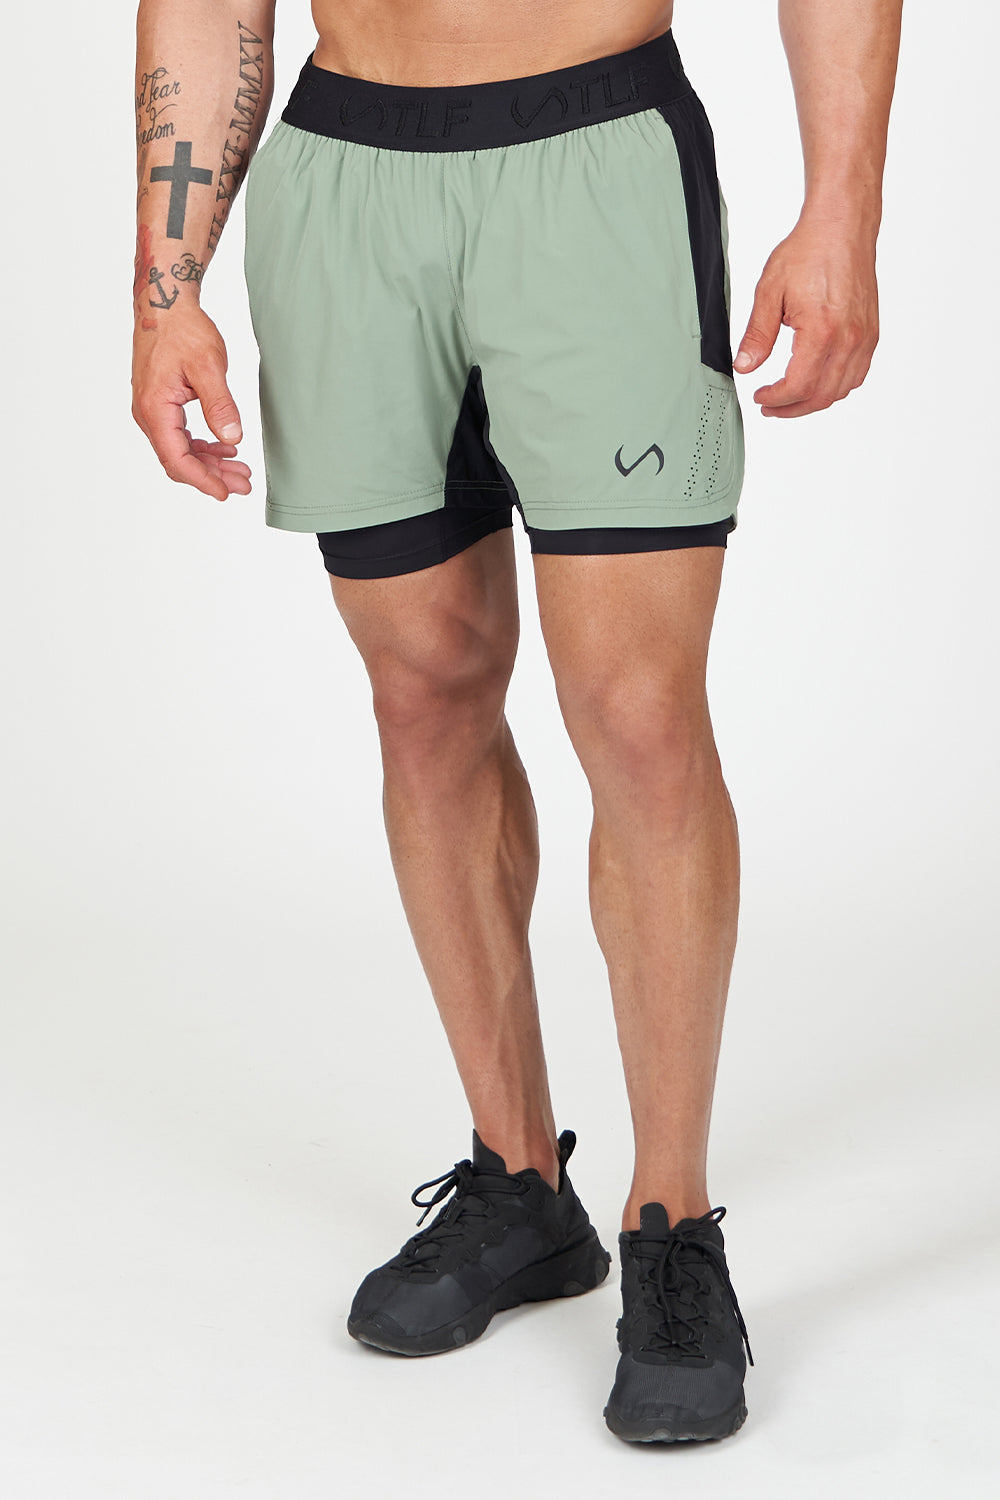 TLF Element Air-Flex 2 In 1 Shorts - TLF Apparel | Take Life Further